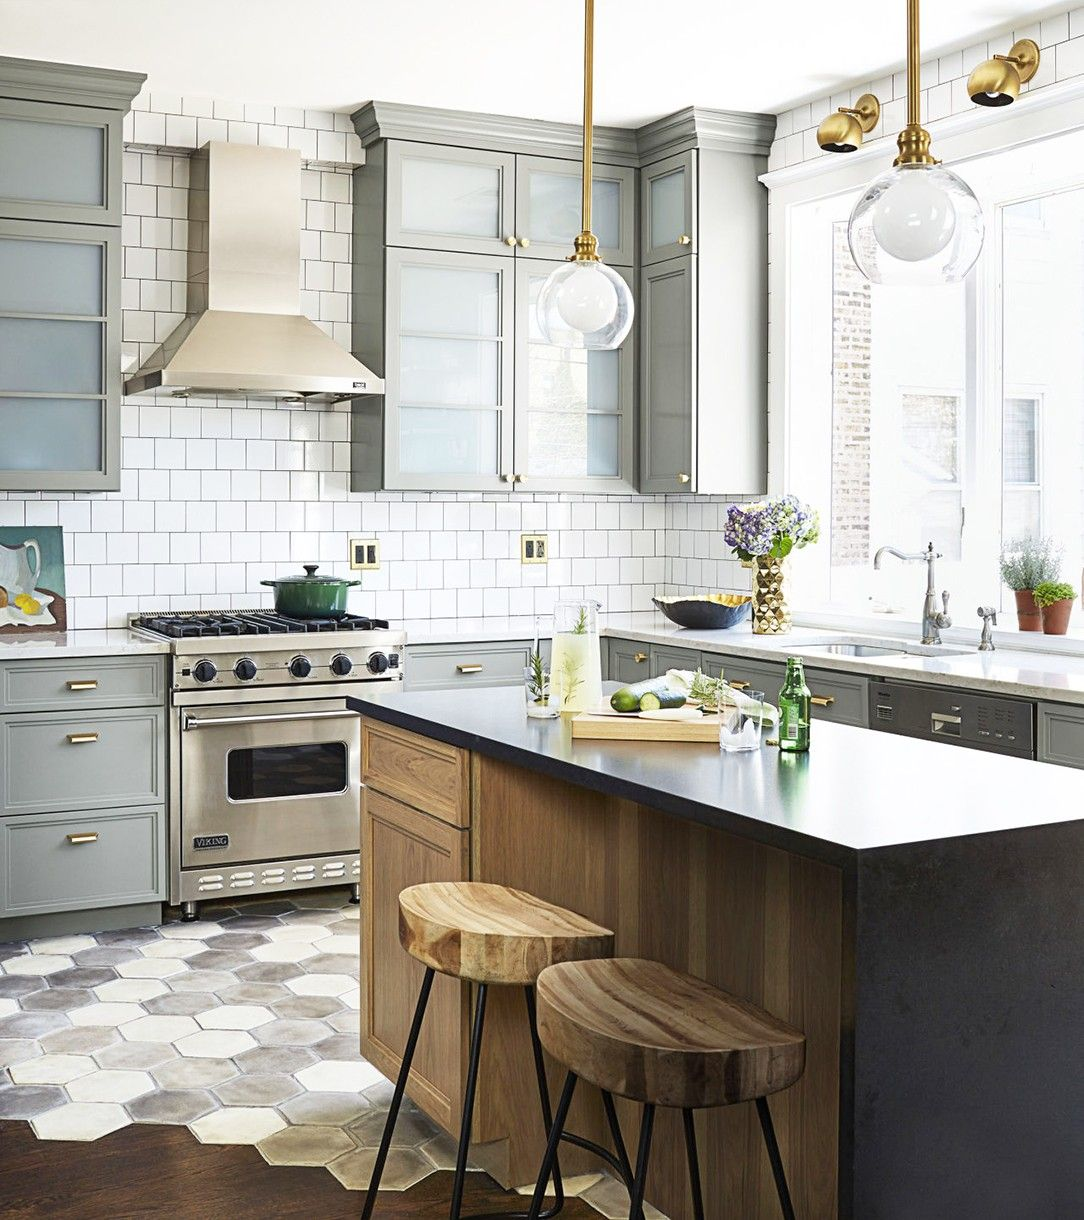 Green Kitchen Kirkman: 12 Kitchen Design Rules To Break In 2016